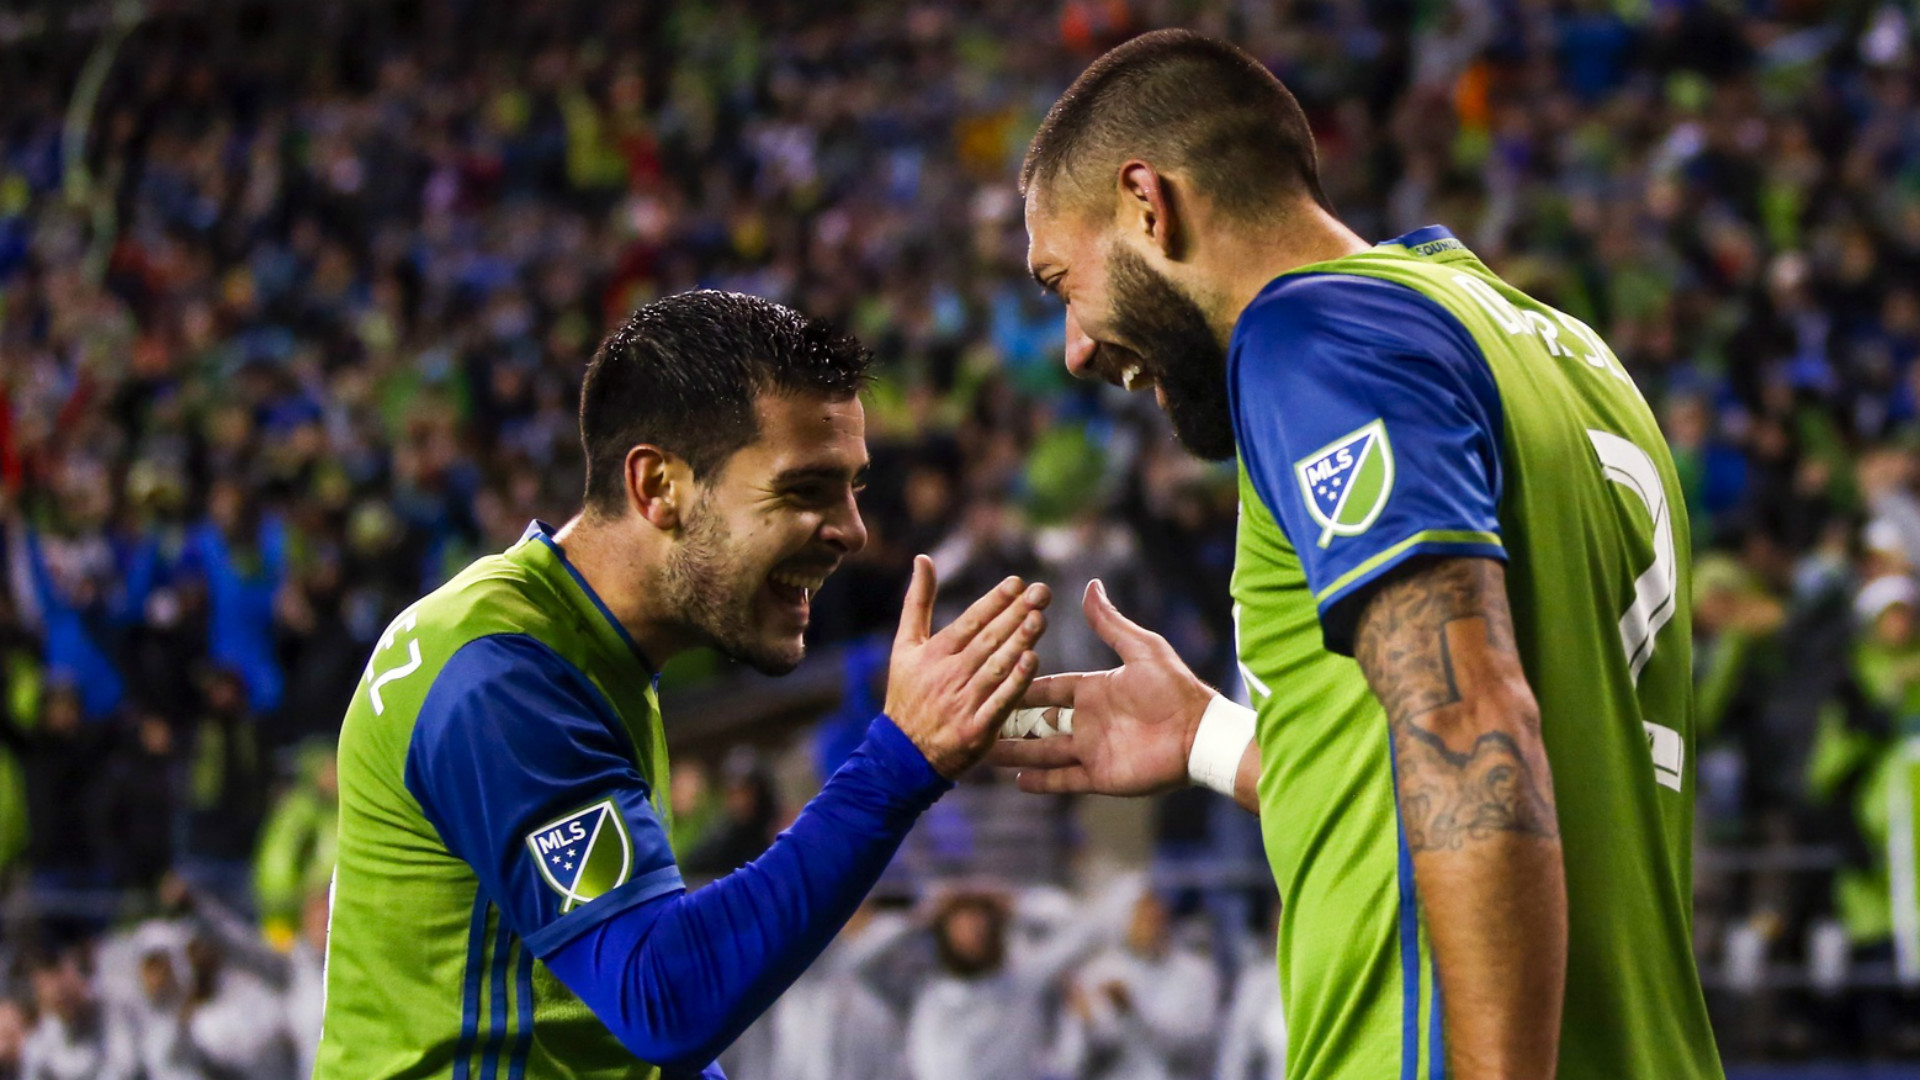 Clint-dempsey-victor-rodriguez-mls-seattle-sounders-11022017_iqf05nr08tgaz31u3g1rehed